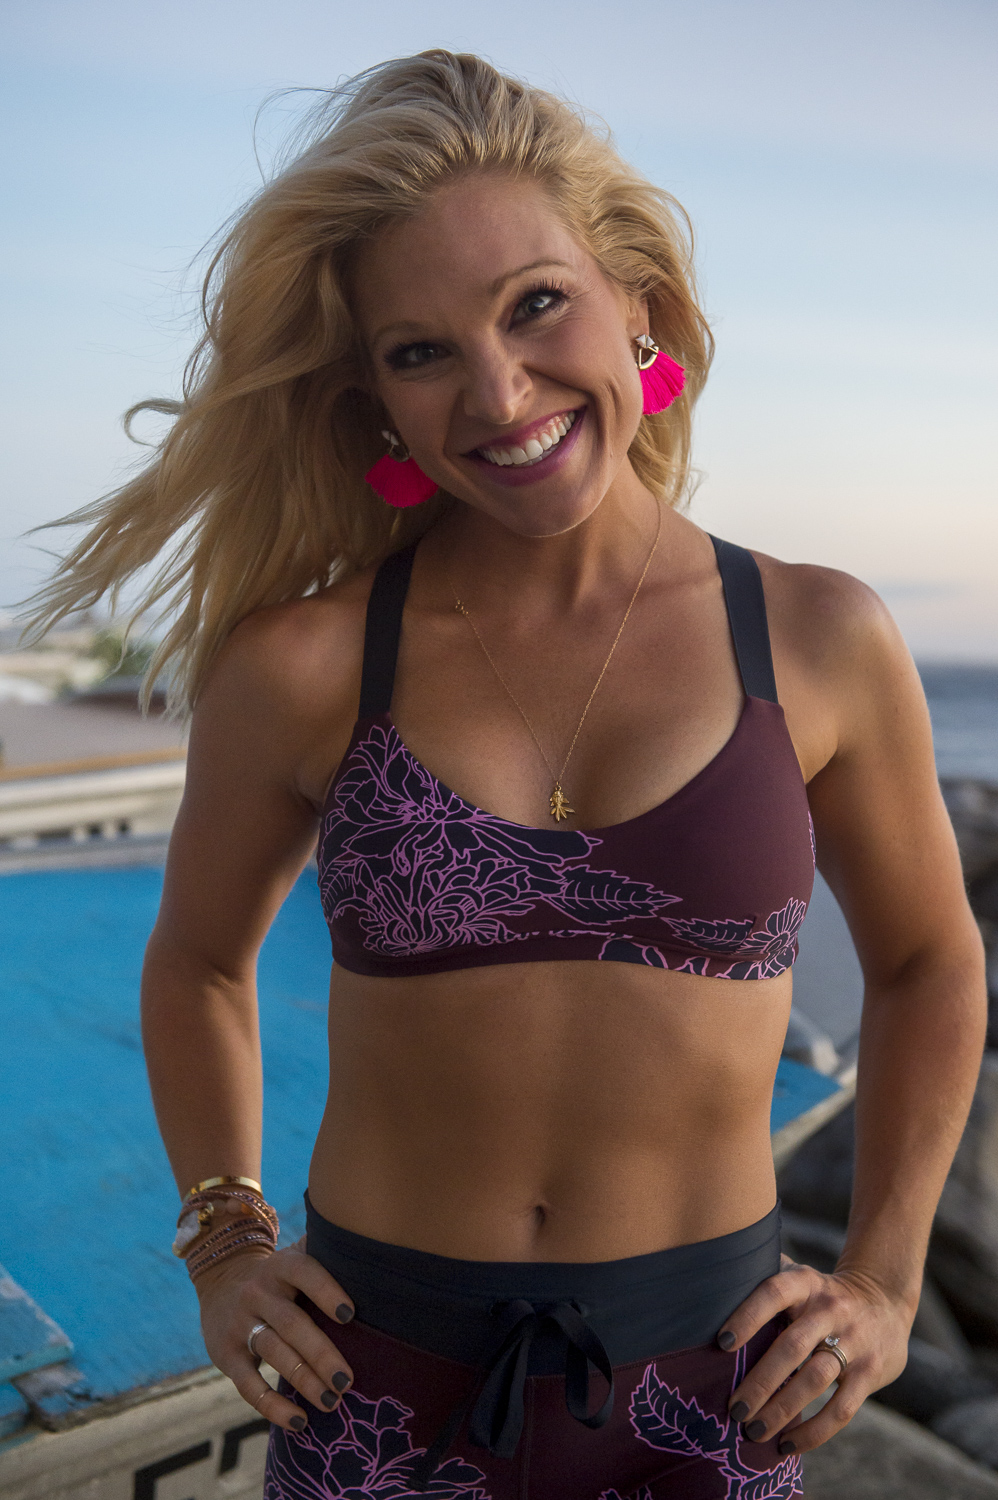 Anna Kooiman AnnaKooiman.com fitness travel lifestyle bondi beach sydney australia photo by lyndon marceau